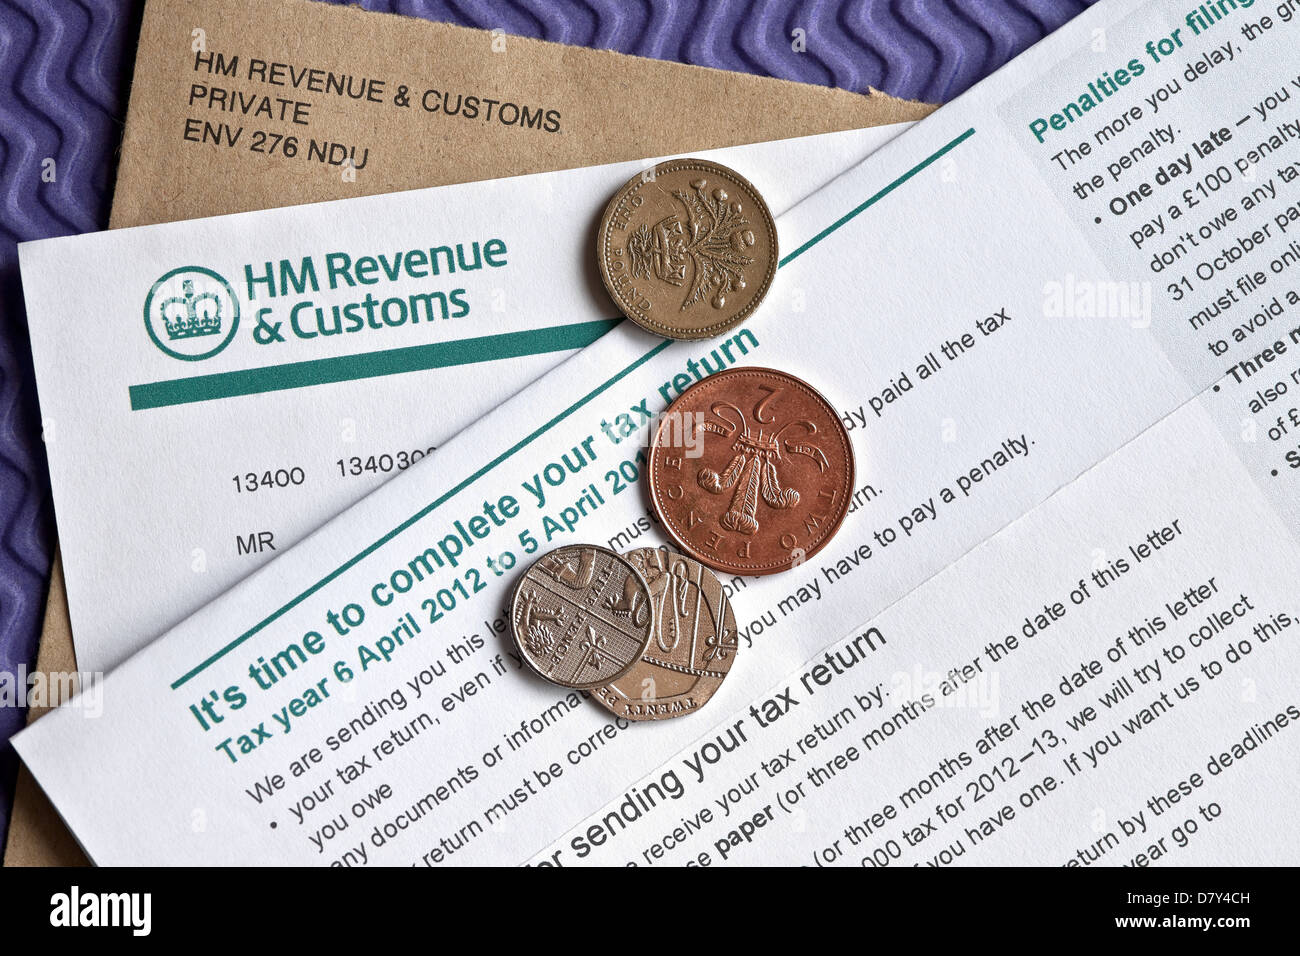 HM Customs and Revenue Self Assessment Notice to complete a Tax Return England UK United Kingdom GB Great Britain - Stock Image